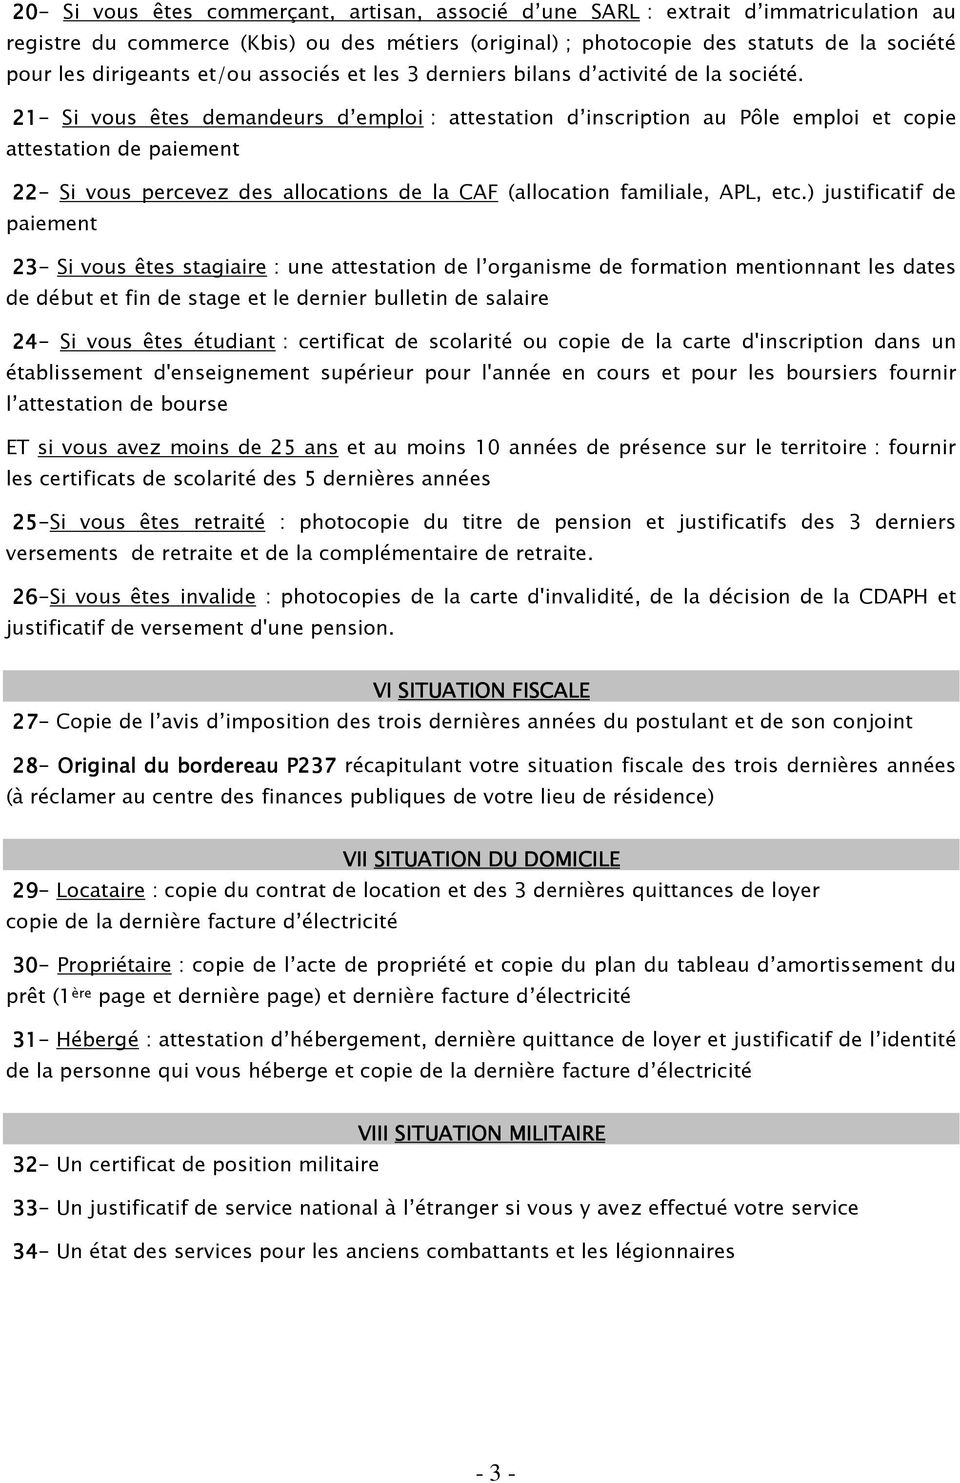 Caf Apl Stagiaire